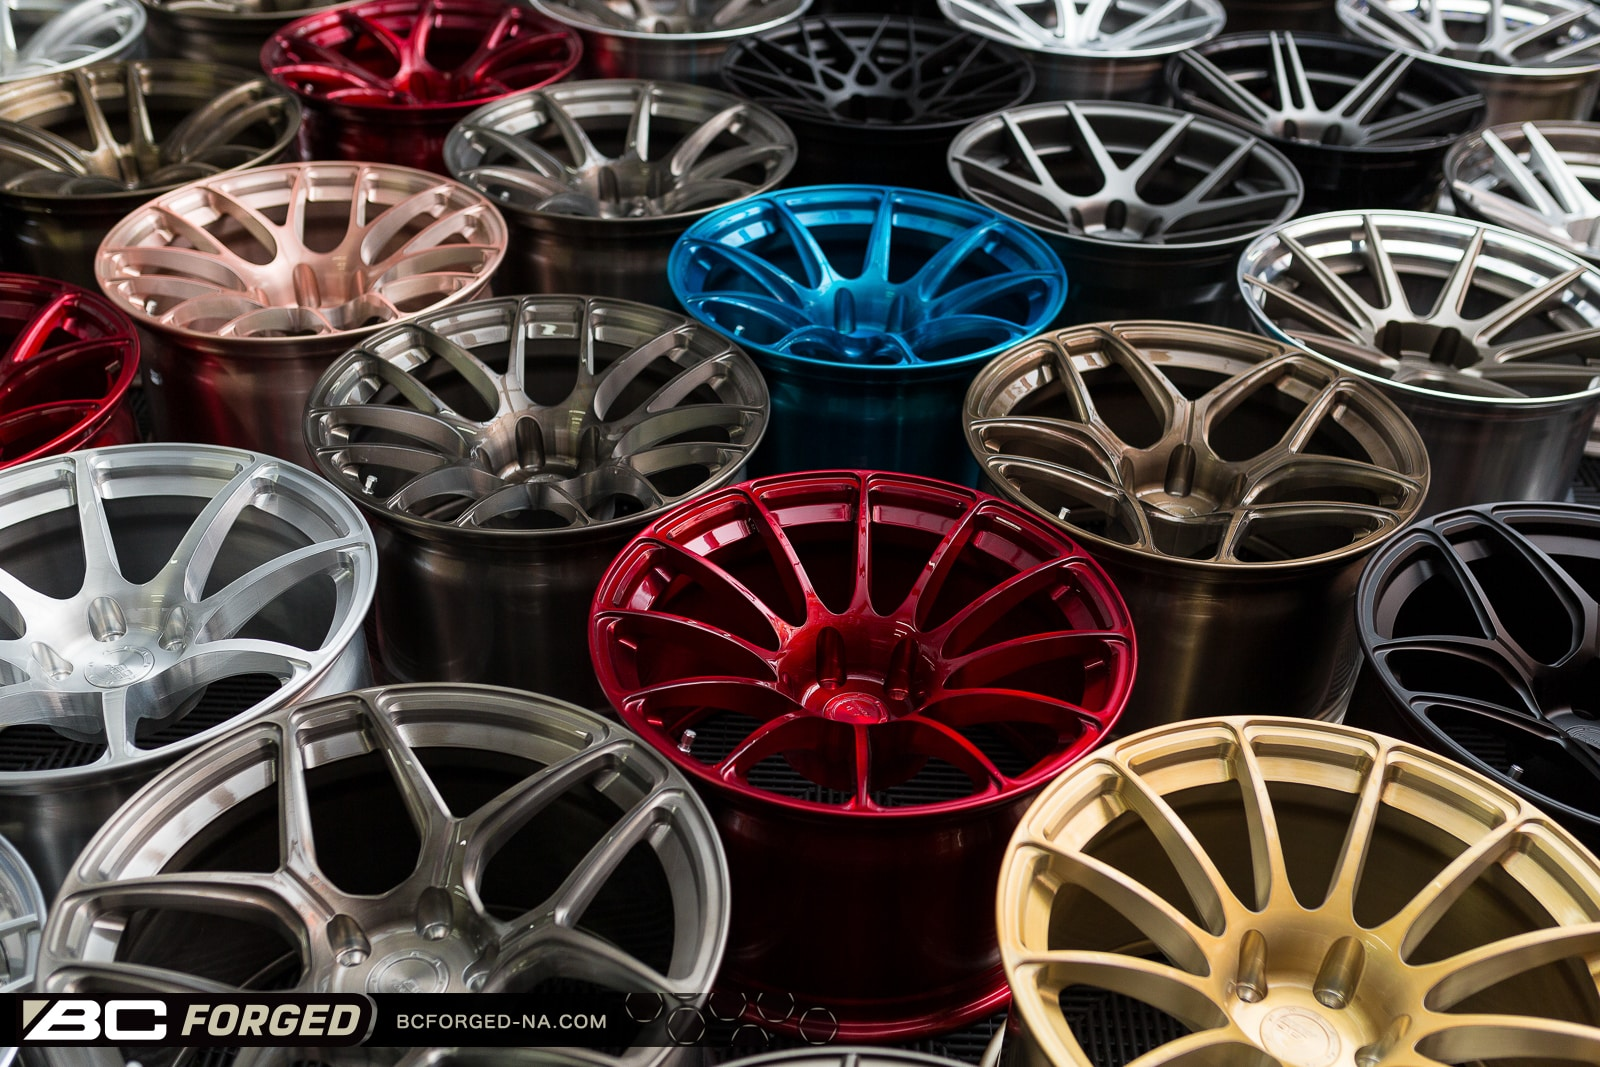 BC-forged-wheel-selection-1.jpg